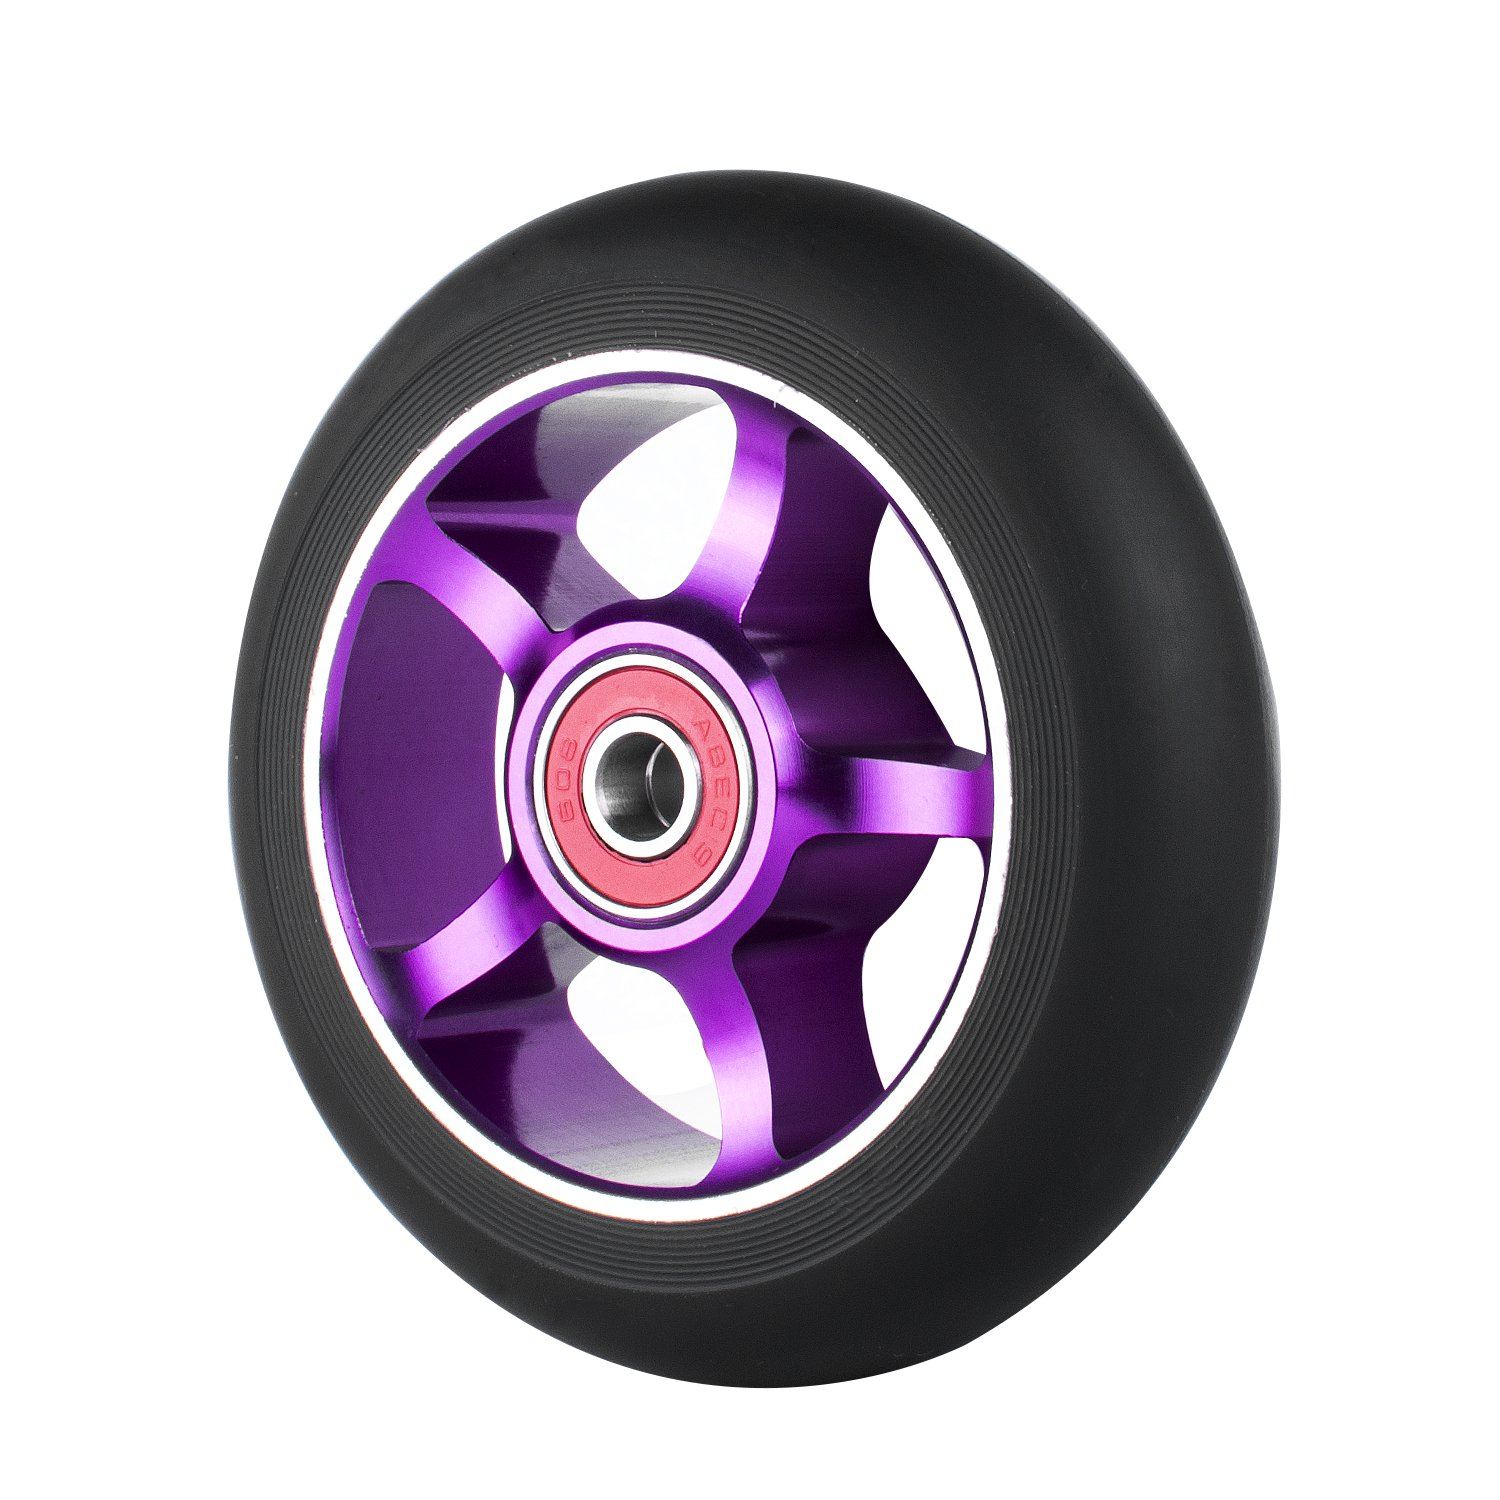 Z-FIRST 2Pcs 100 mm Pro Stunt Scooter Wheels with